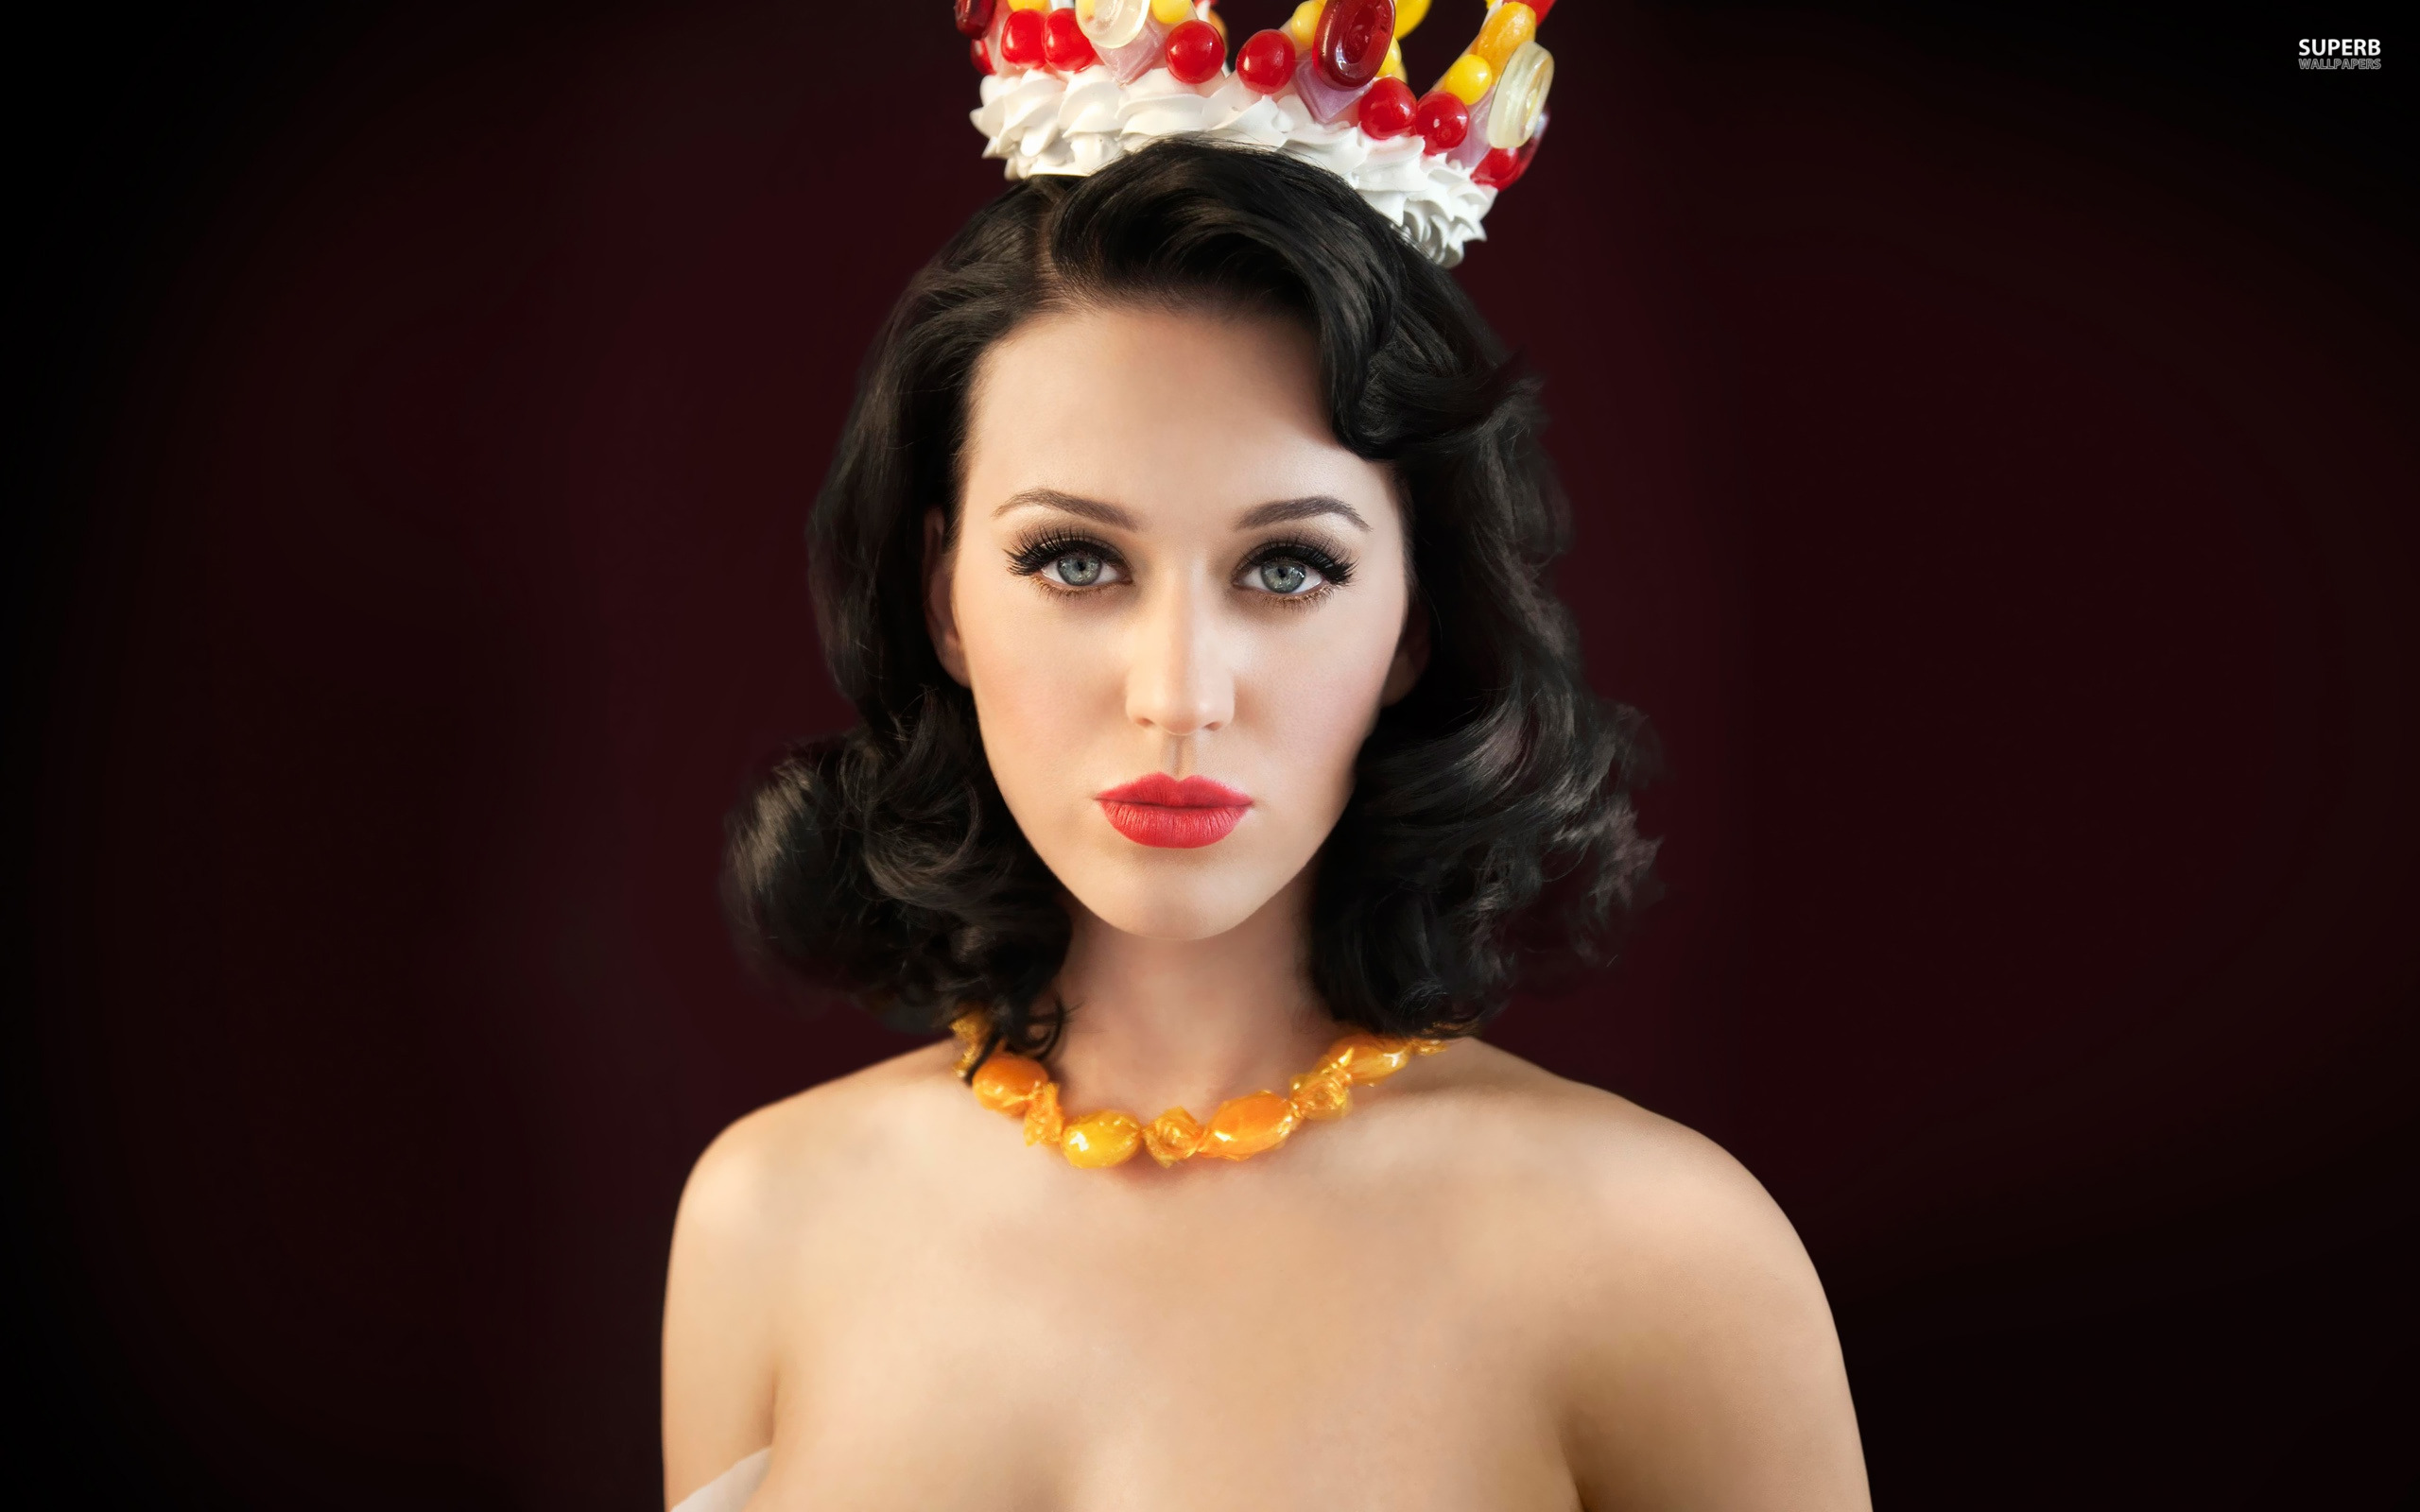 Katy Perry wallpaper 2560x1600 jpg